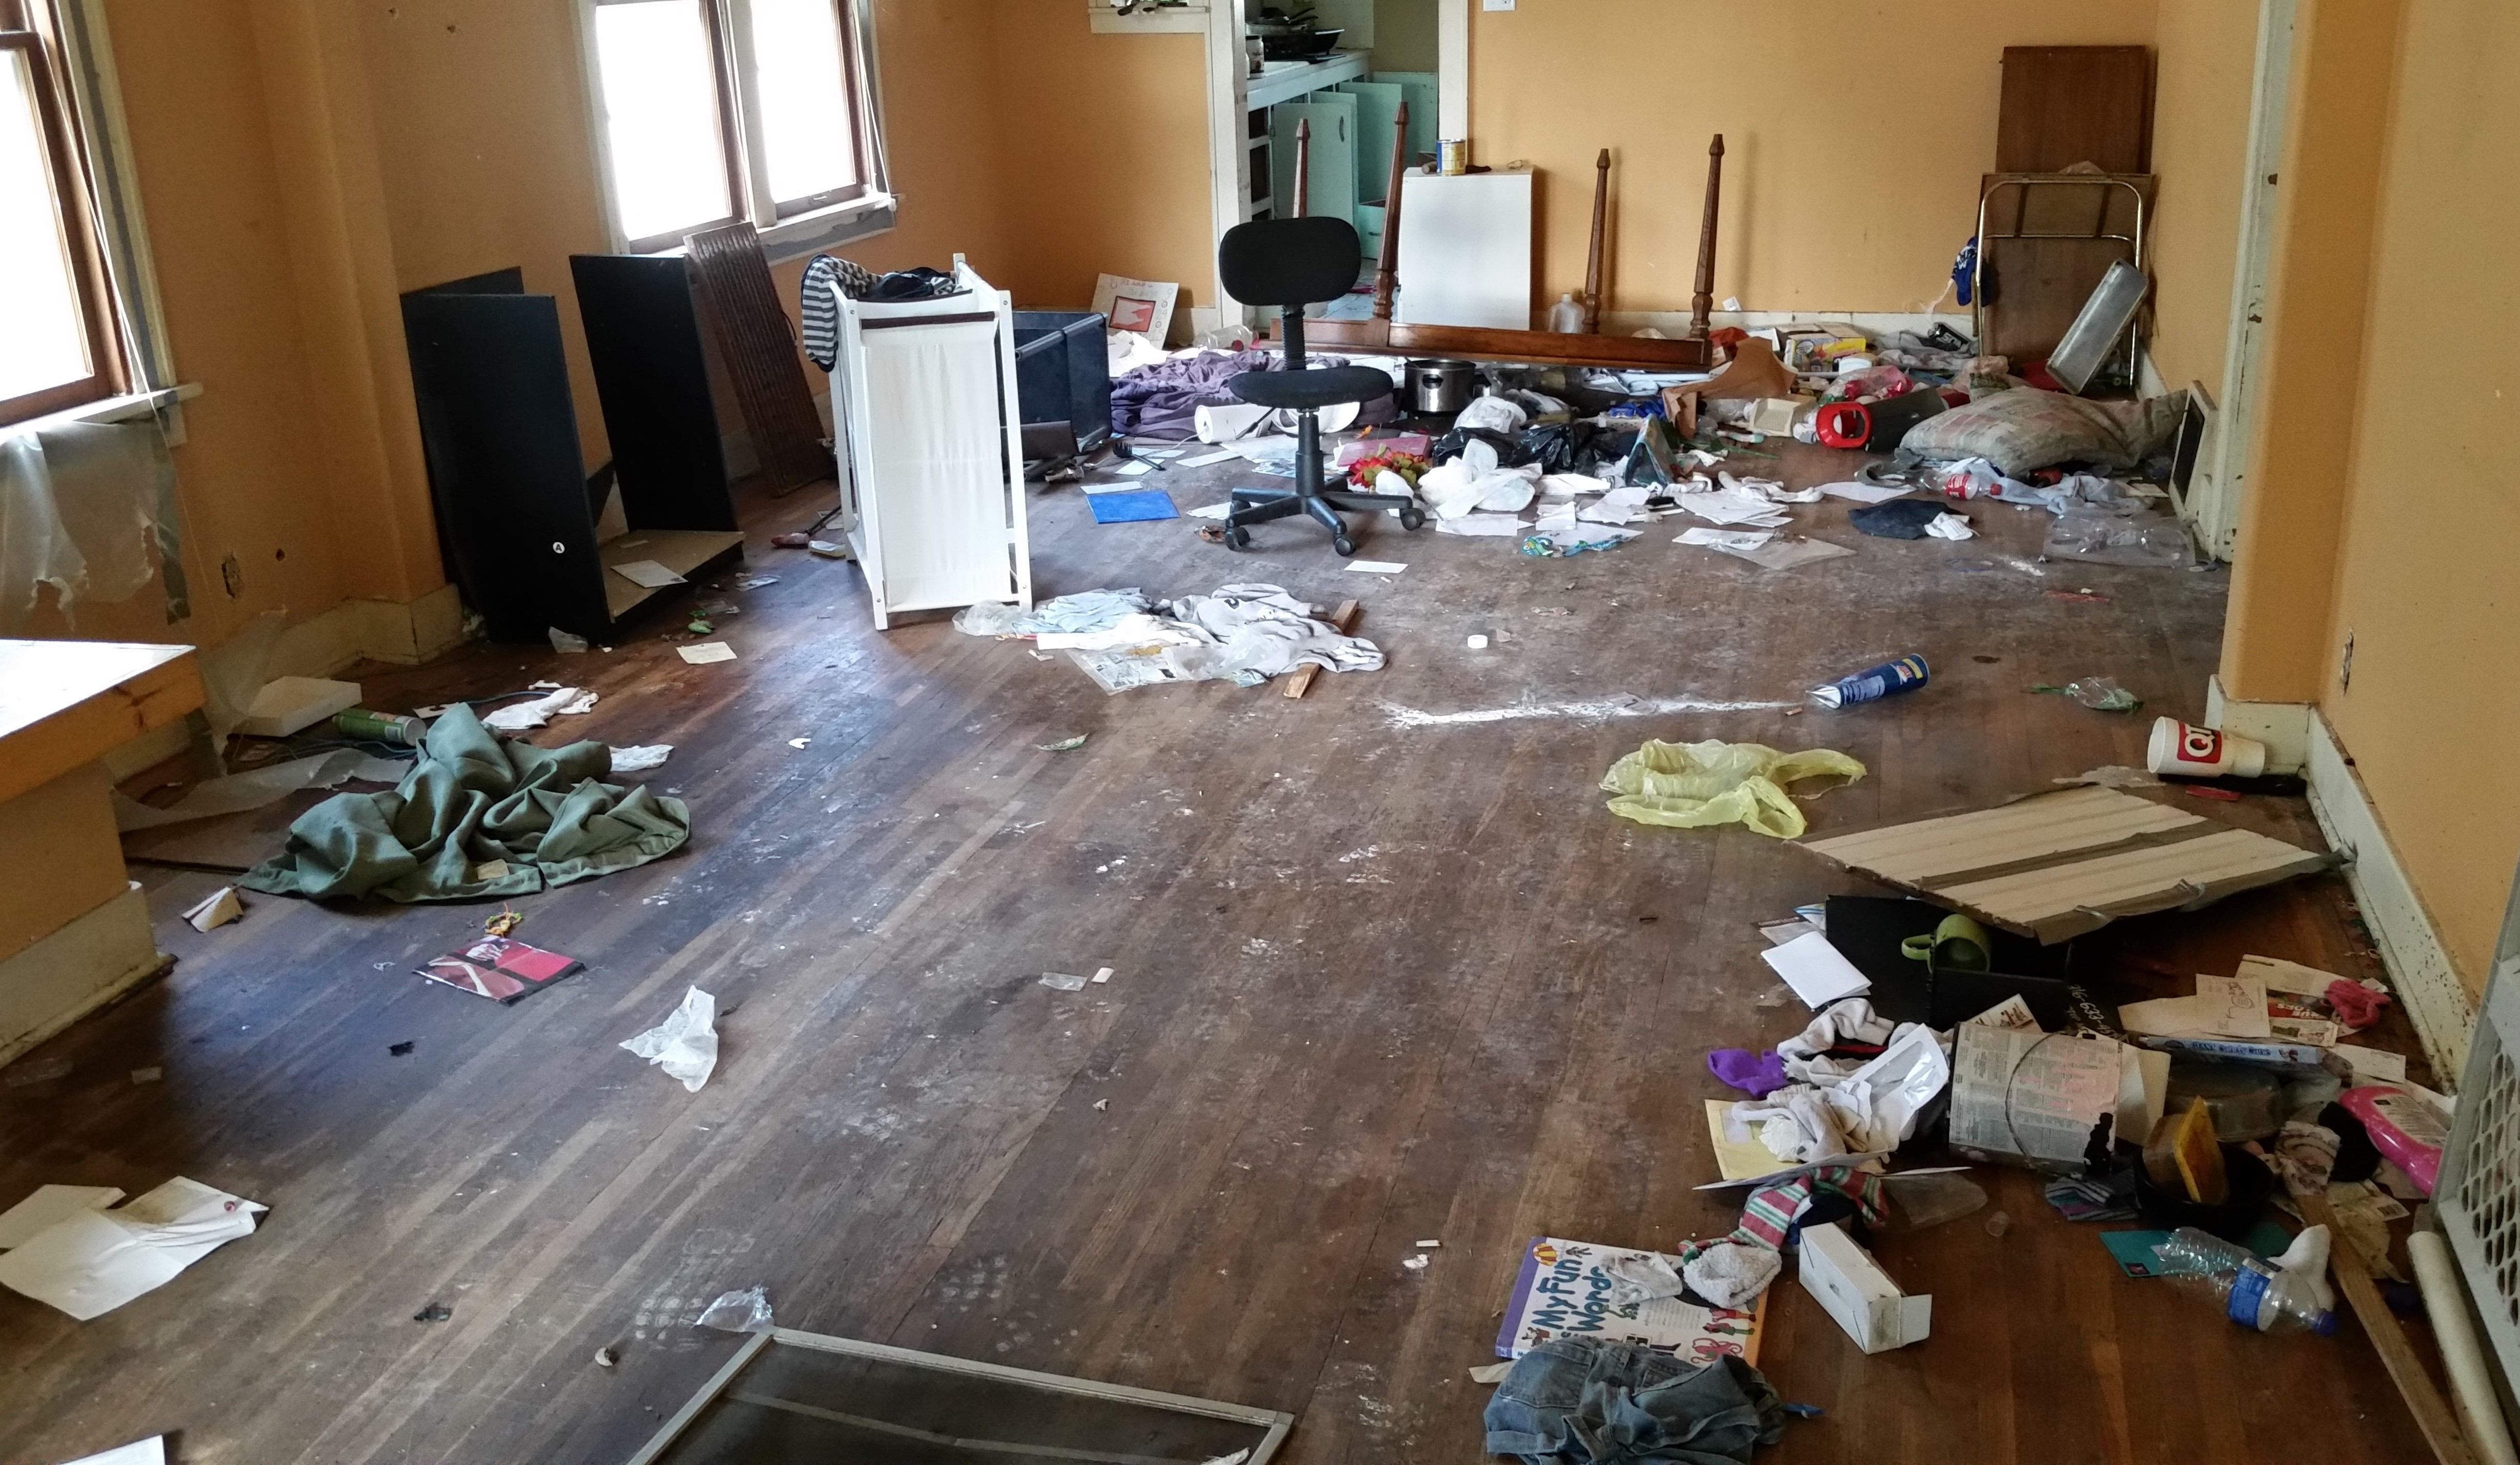 Tenants leave a mess for you? No problem! Heartland